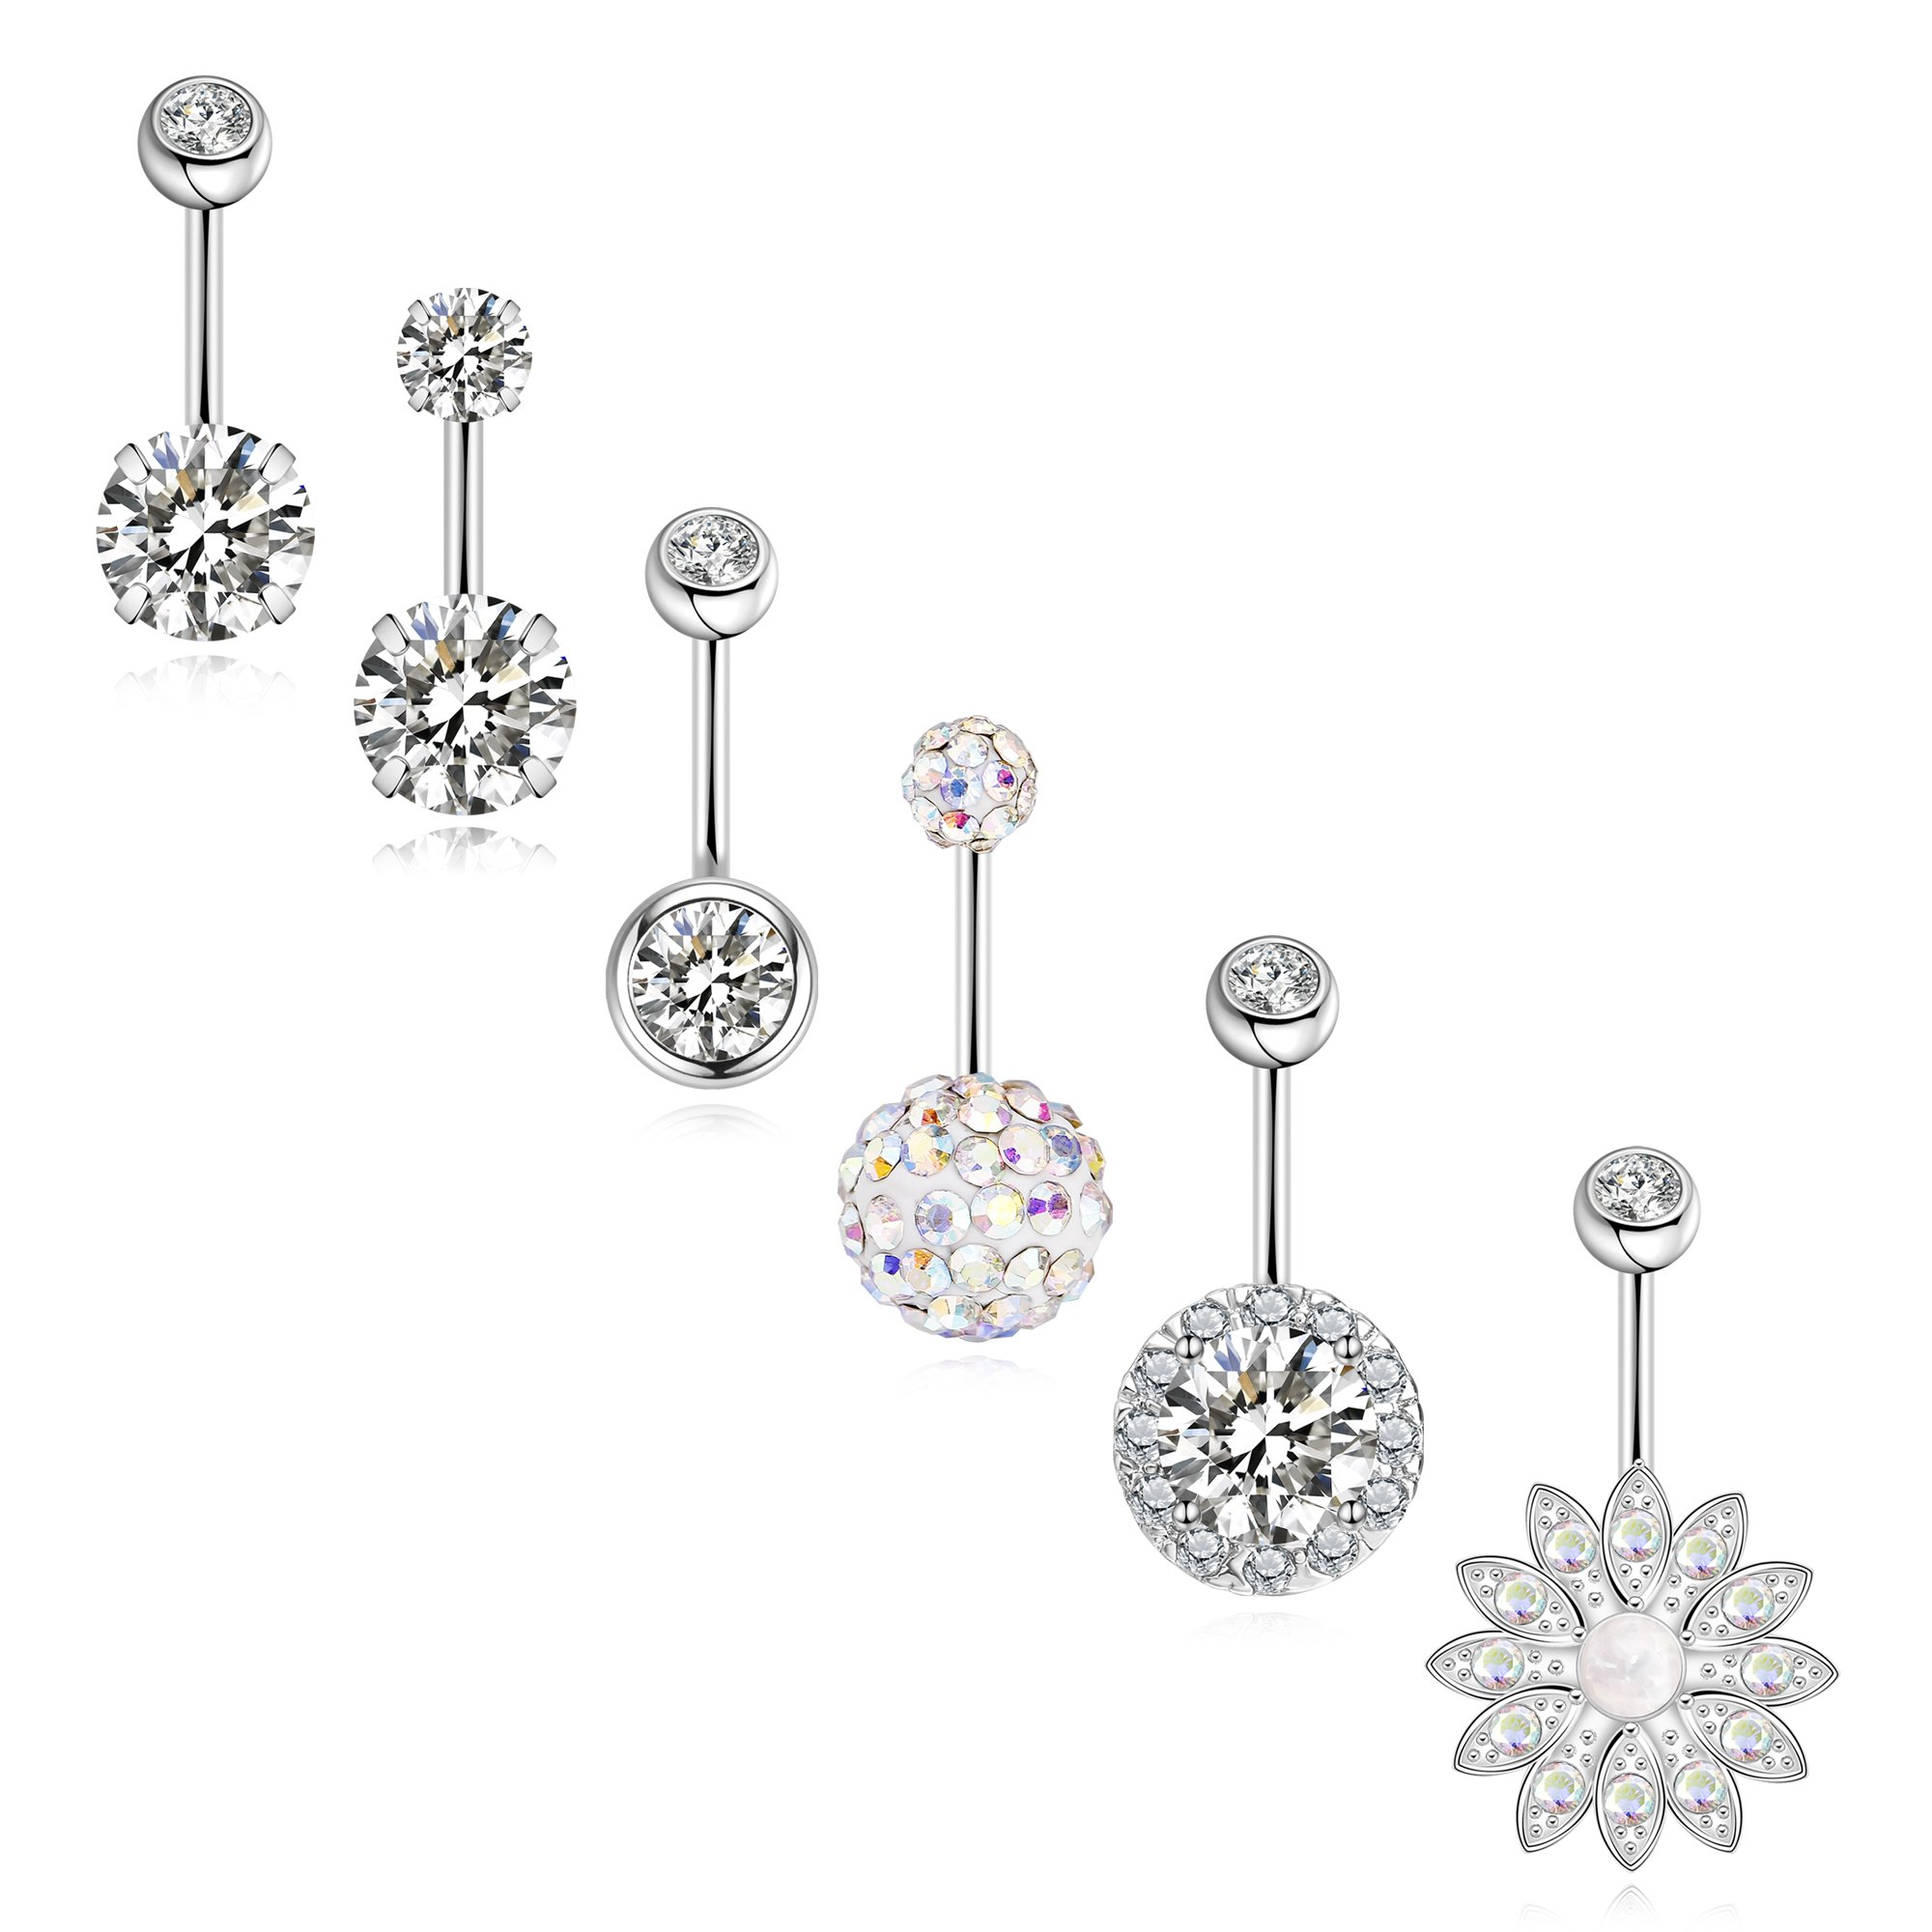 SEVENSTONE 6PCS Stainless Steel Belly Button Rings for Girls Women Screw Navel Piercing Bars Body Jewelry